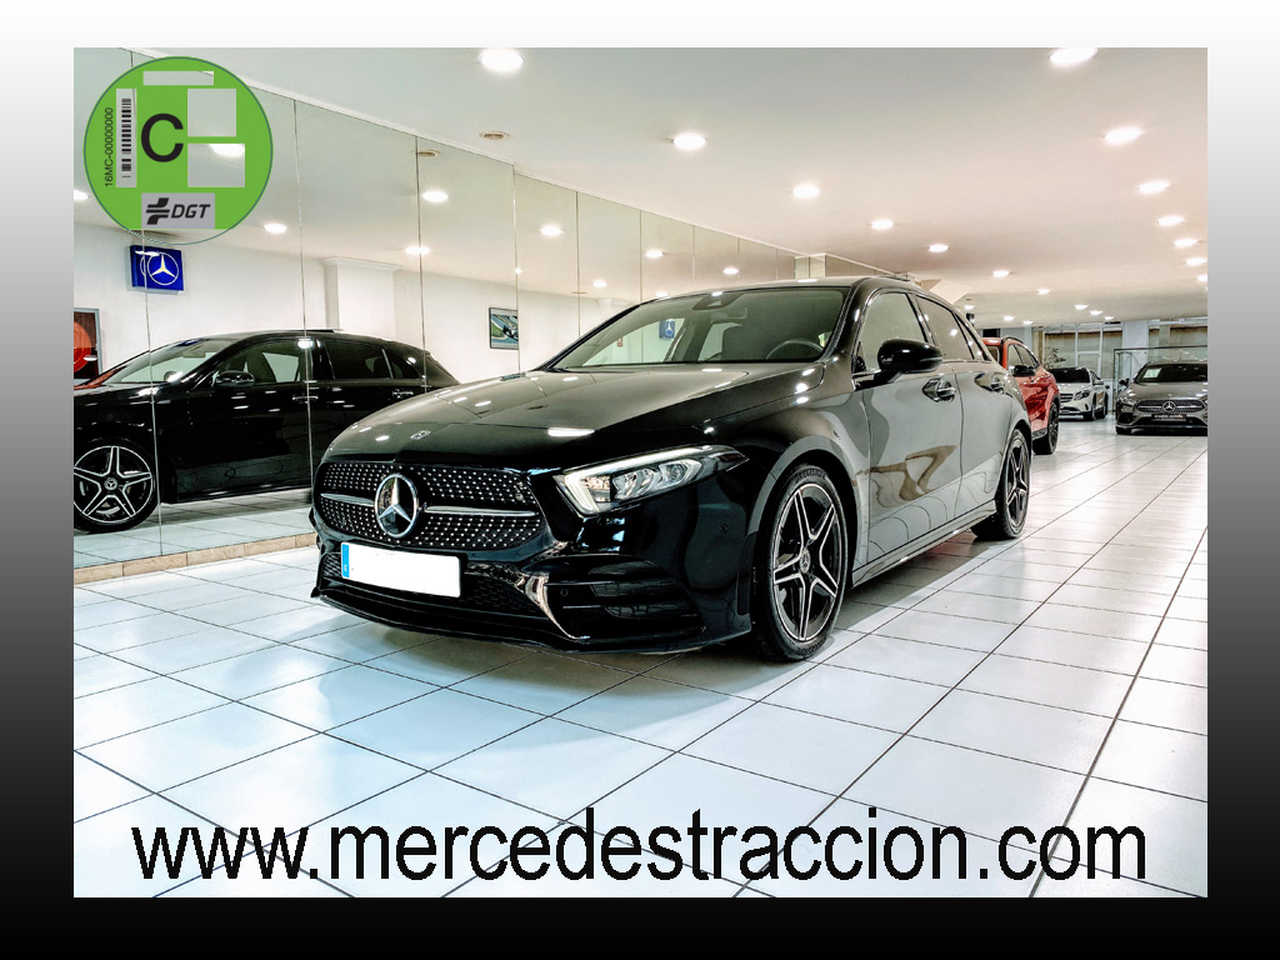 Mercedes Clase A 180 7G-DCT/AMG Line/Paquete Premium/Paquete Night/Techo Panorámico   - Foto 1